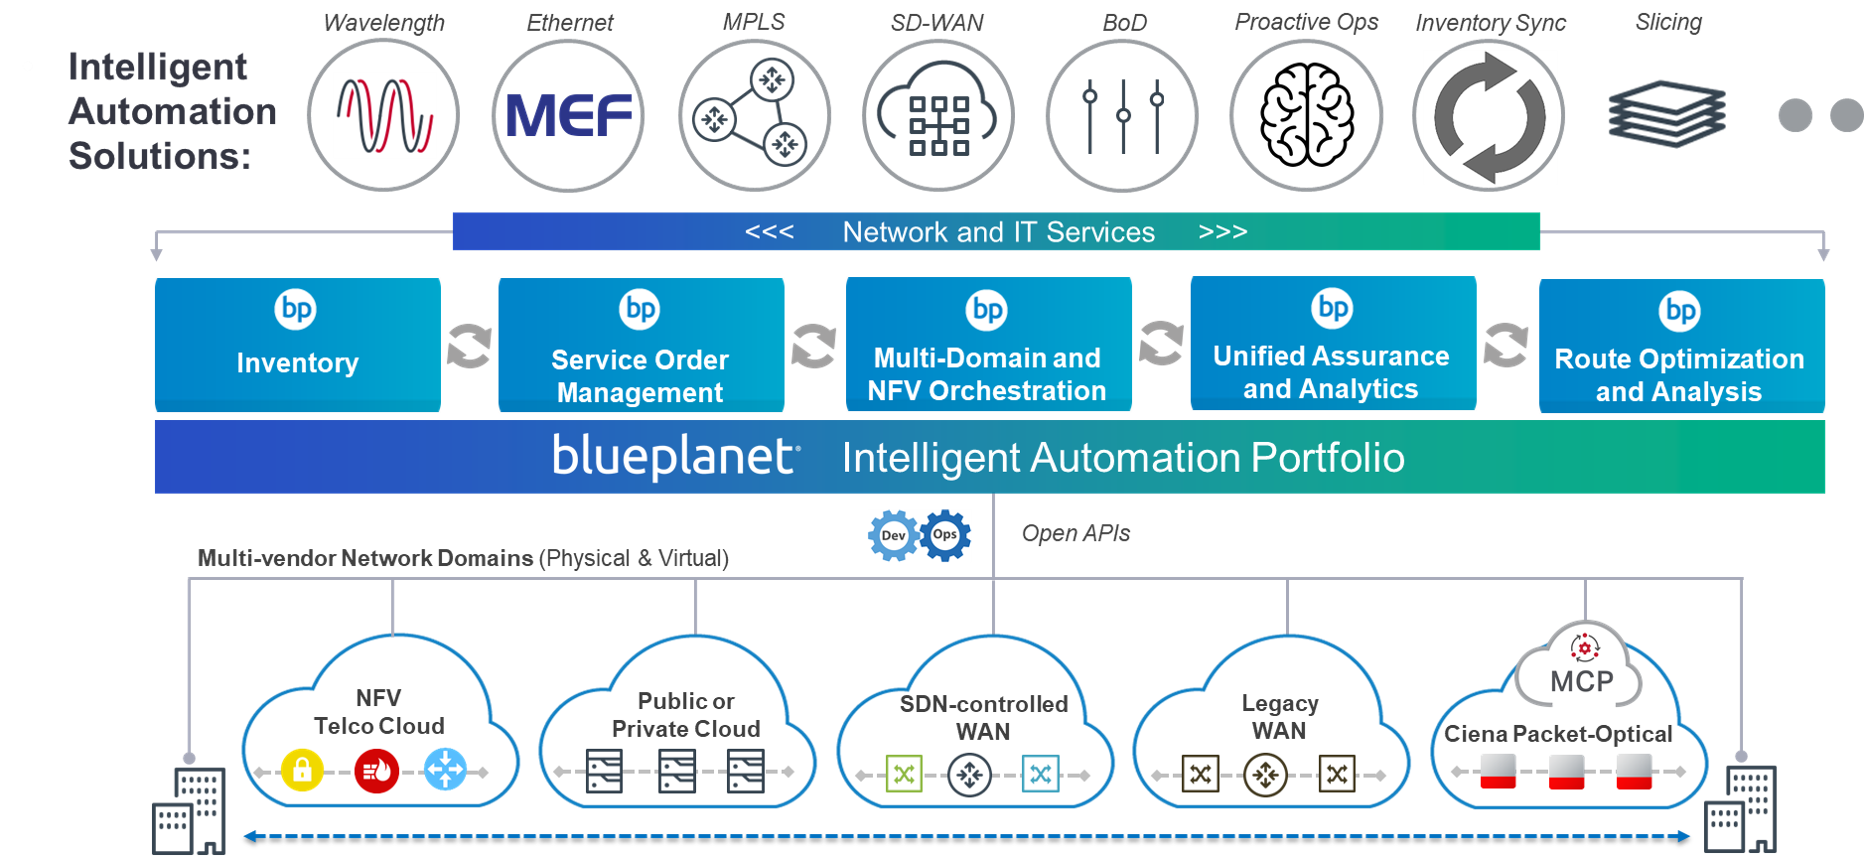 Blue Planet Product Offerings Diagram